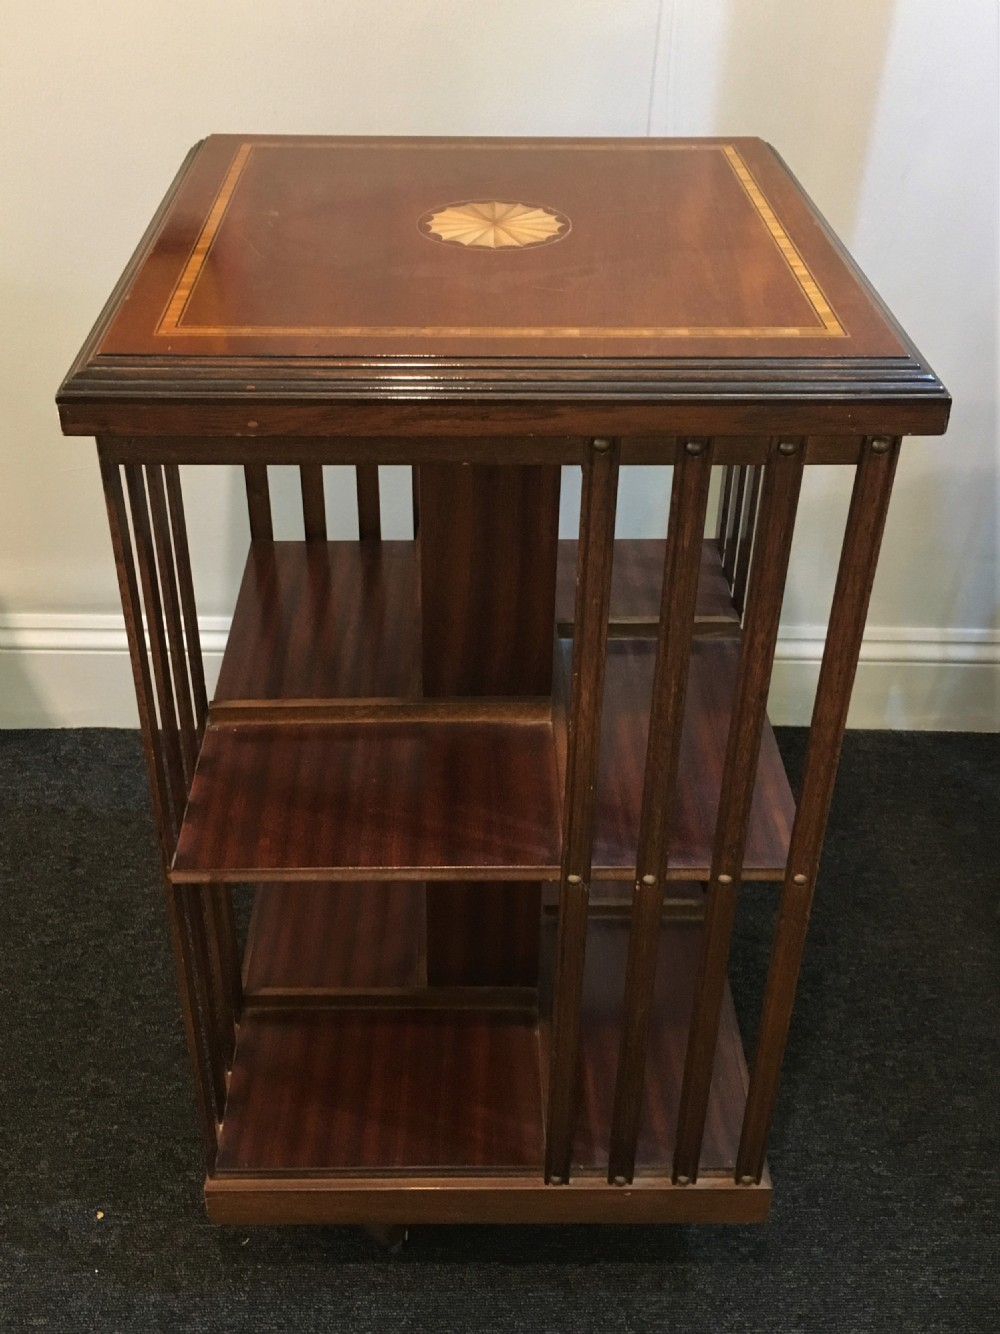 A Good Quality Antique Early C20th Inlaid Mahogany Rotating